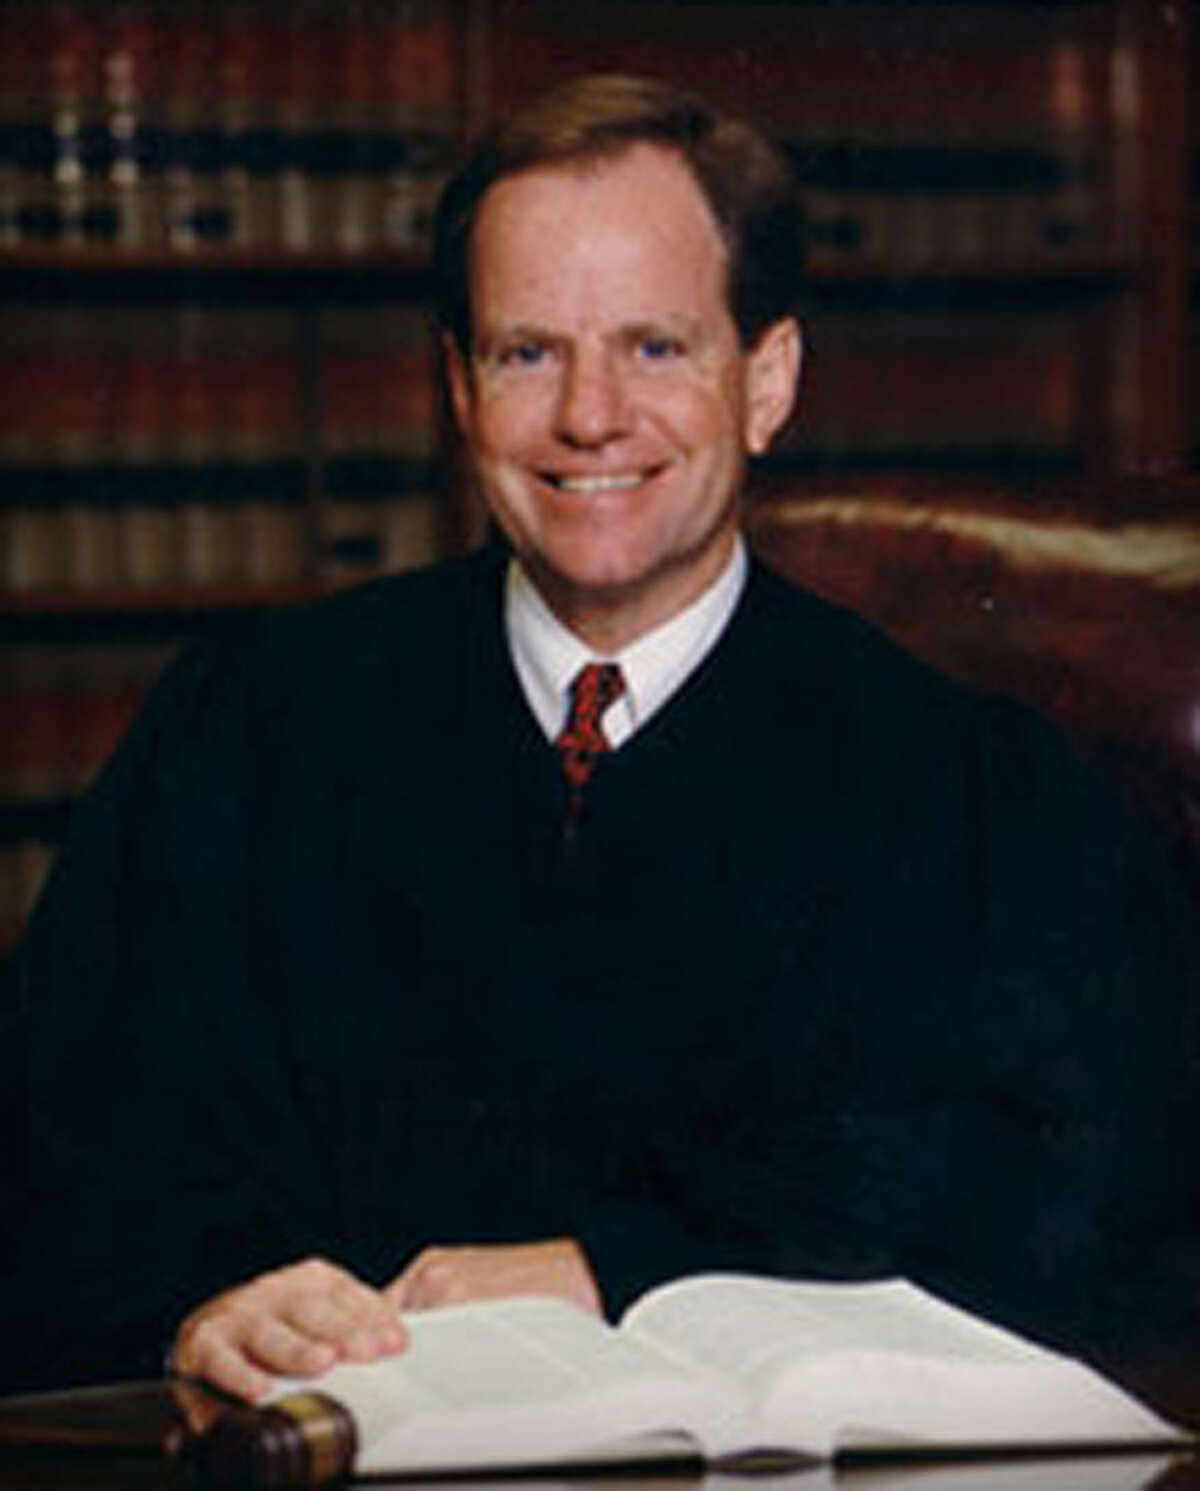 """David Berchelmann is retiring from the 37th state District Court bench after 20 years. His advice to new judges? """"Be open-minded and be as fair as they possibly can. Just listen. There's less black and white the longer you've done this."""""""